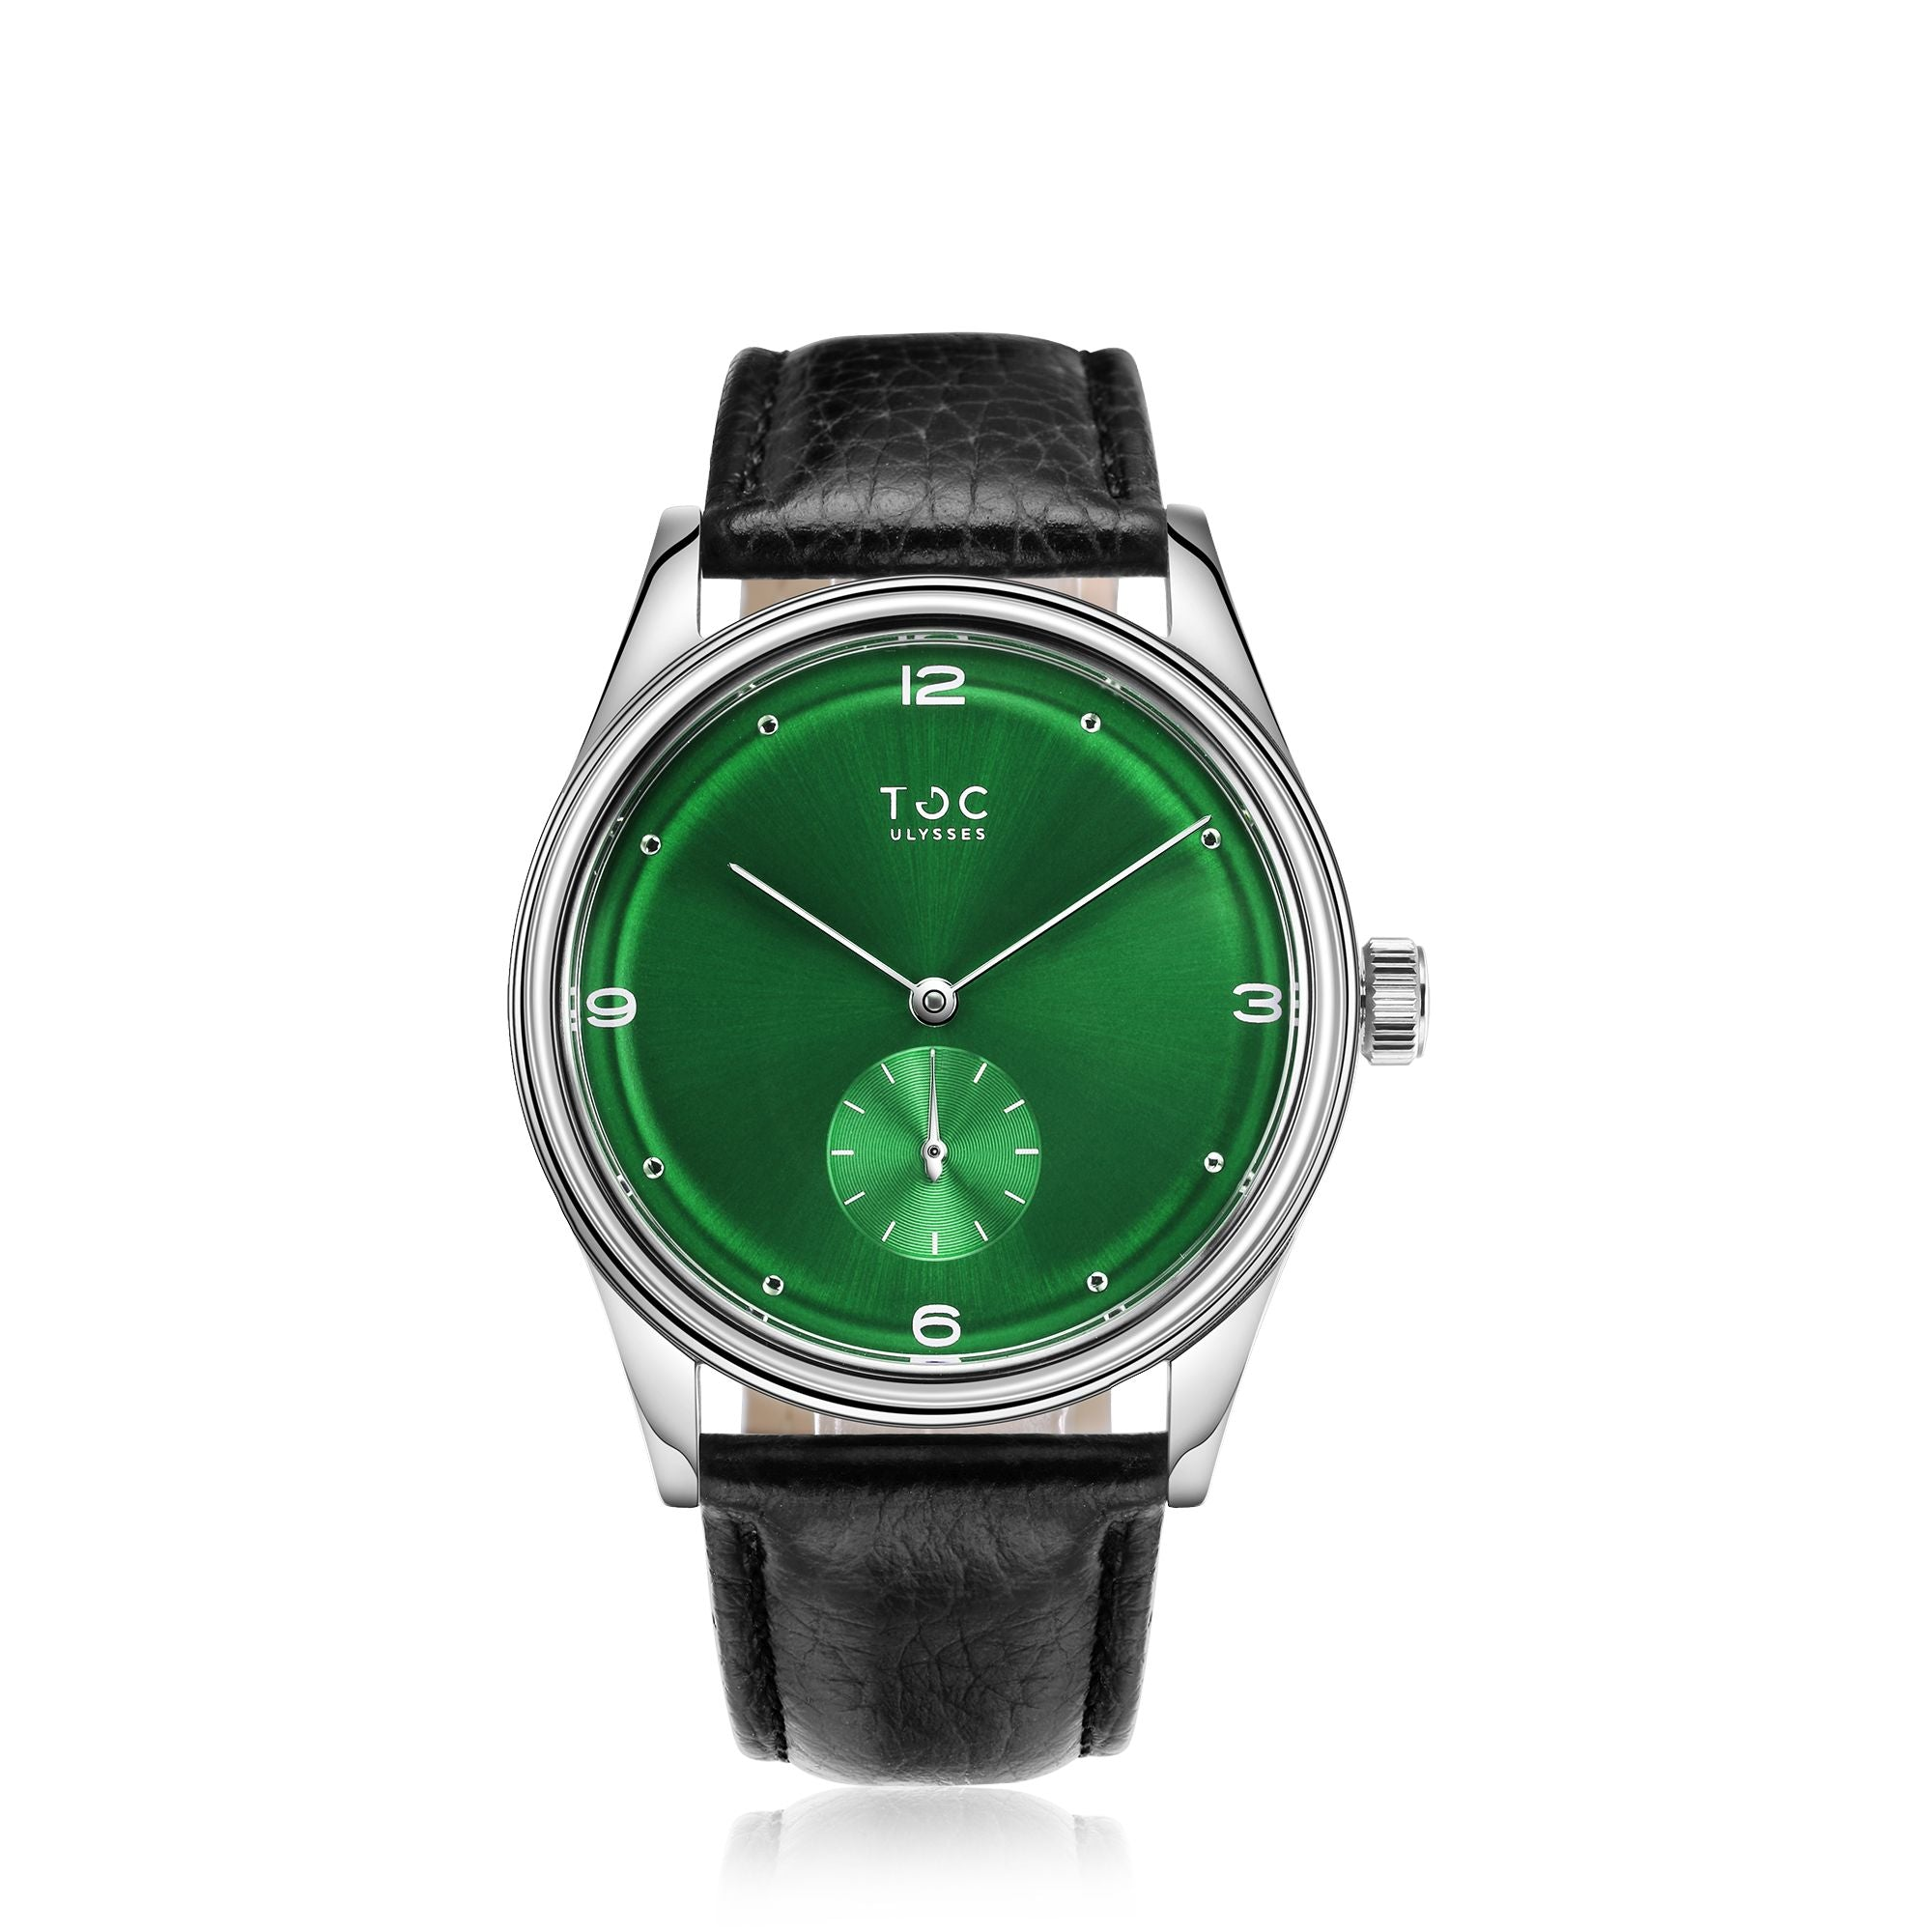 jord sandalwood frankie dark guide bake and emerald books my watch feat for watches dsc gift will holiday